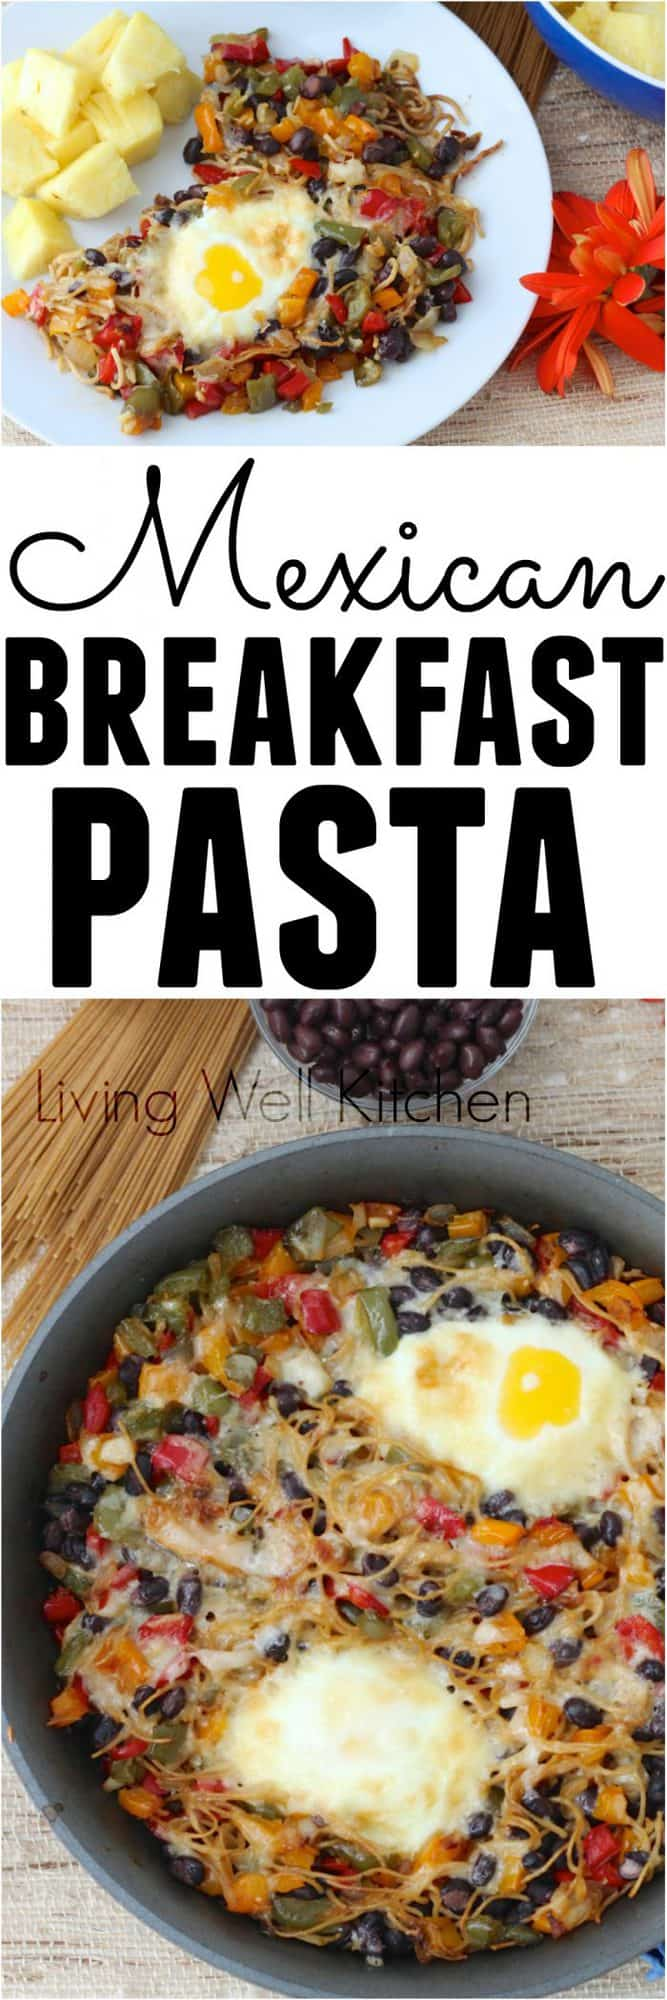 Leftover pasta turns into something incredible with veggies, eggs, and black beans to make this amazing meatless Mexican Breakfast Pasta recipe. Great for a vegetarian dinner, too!